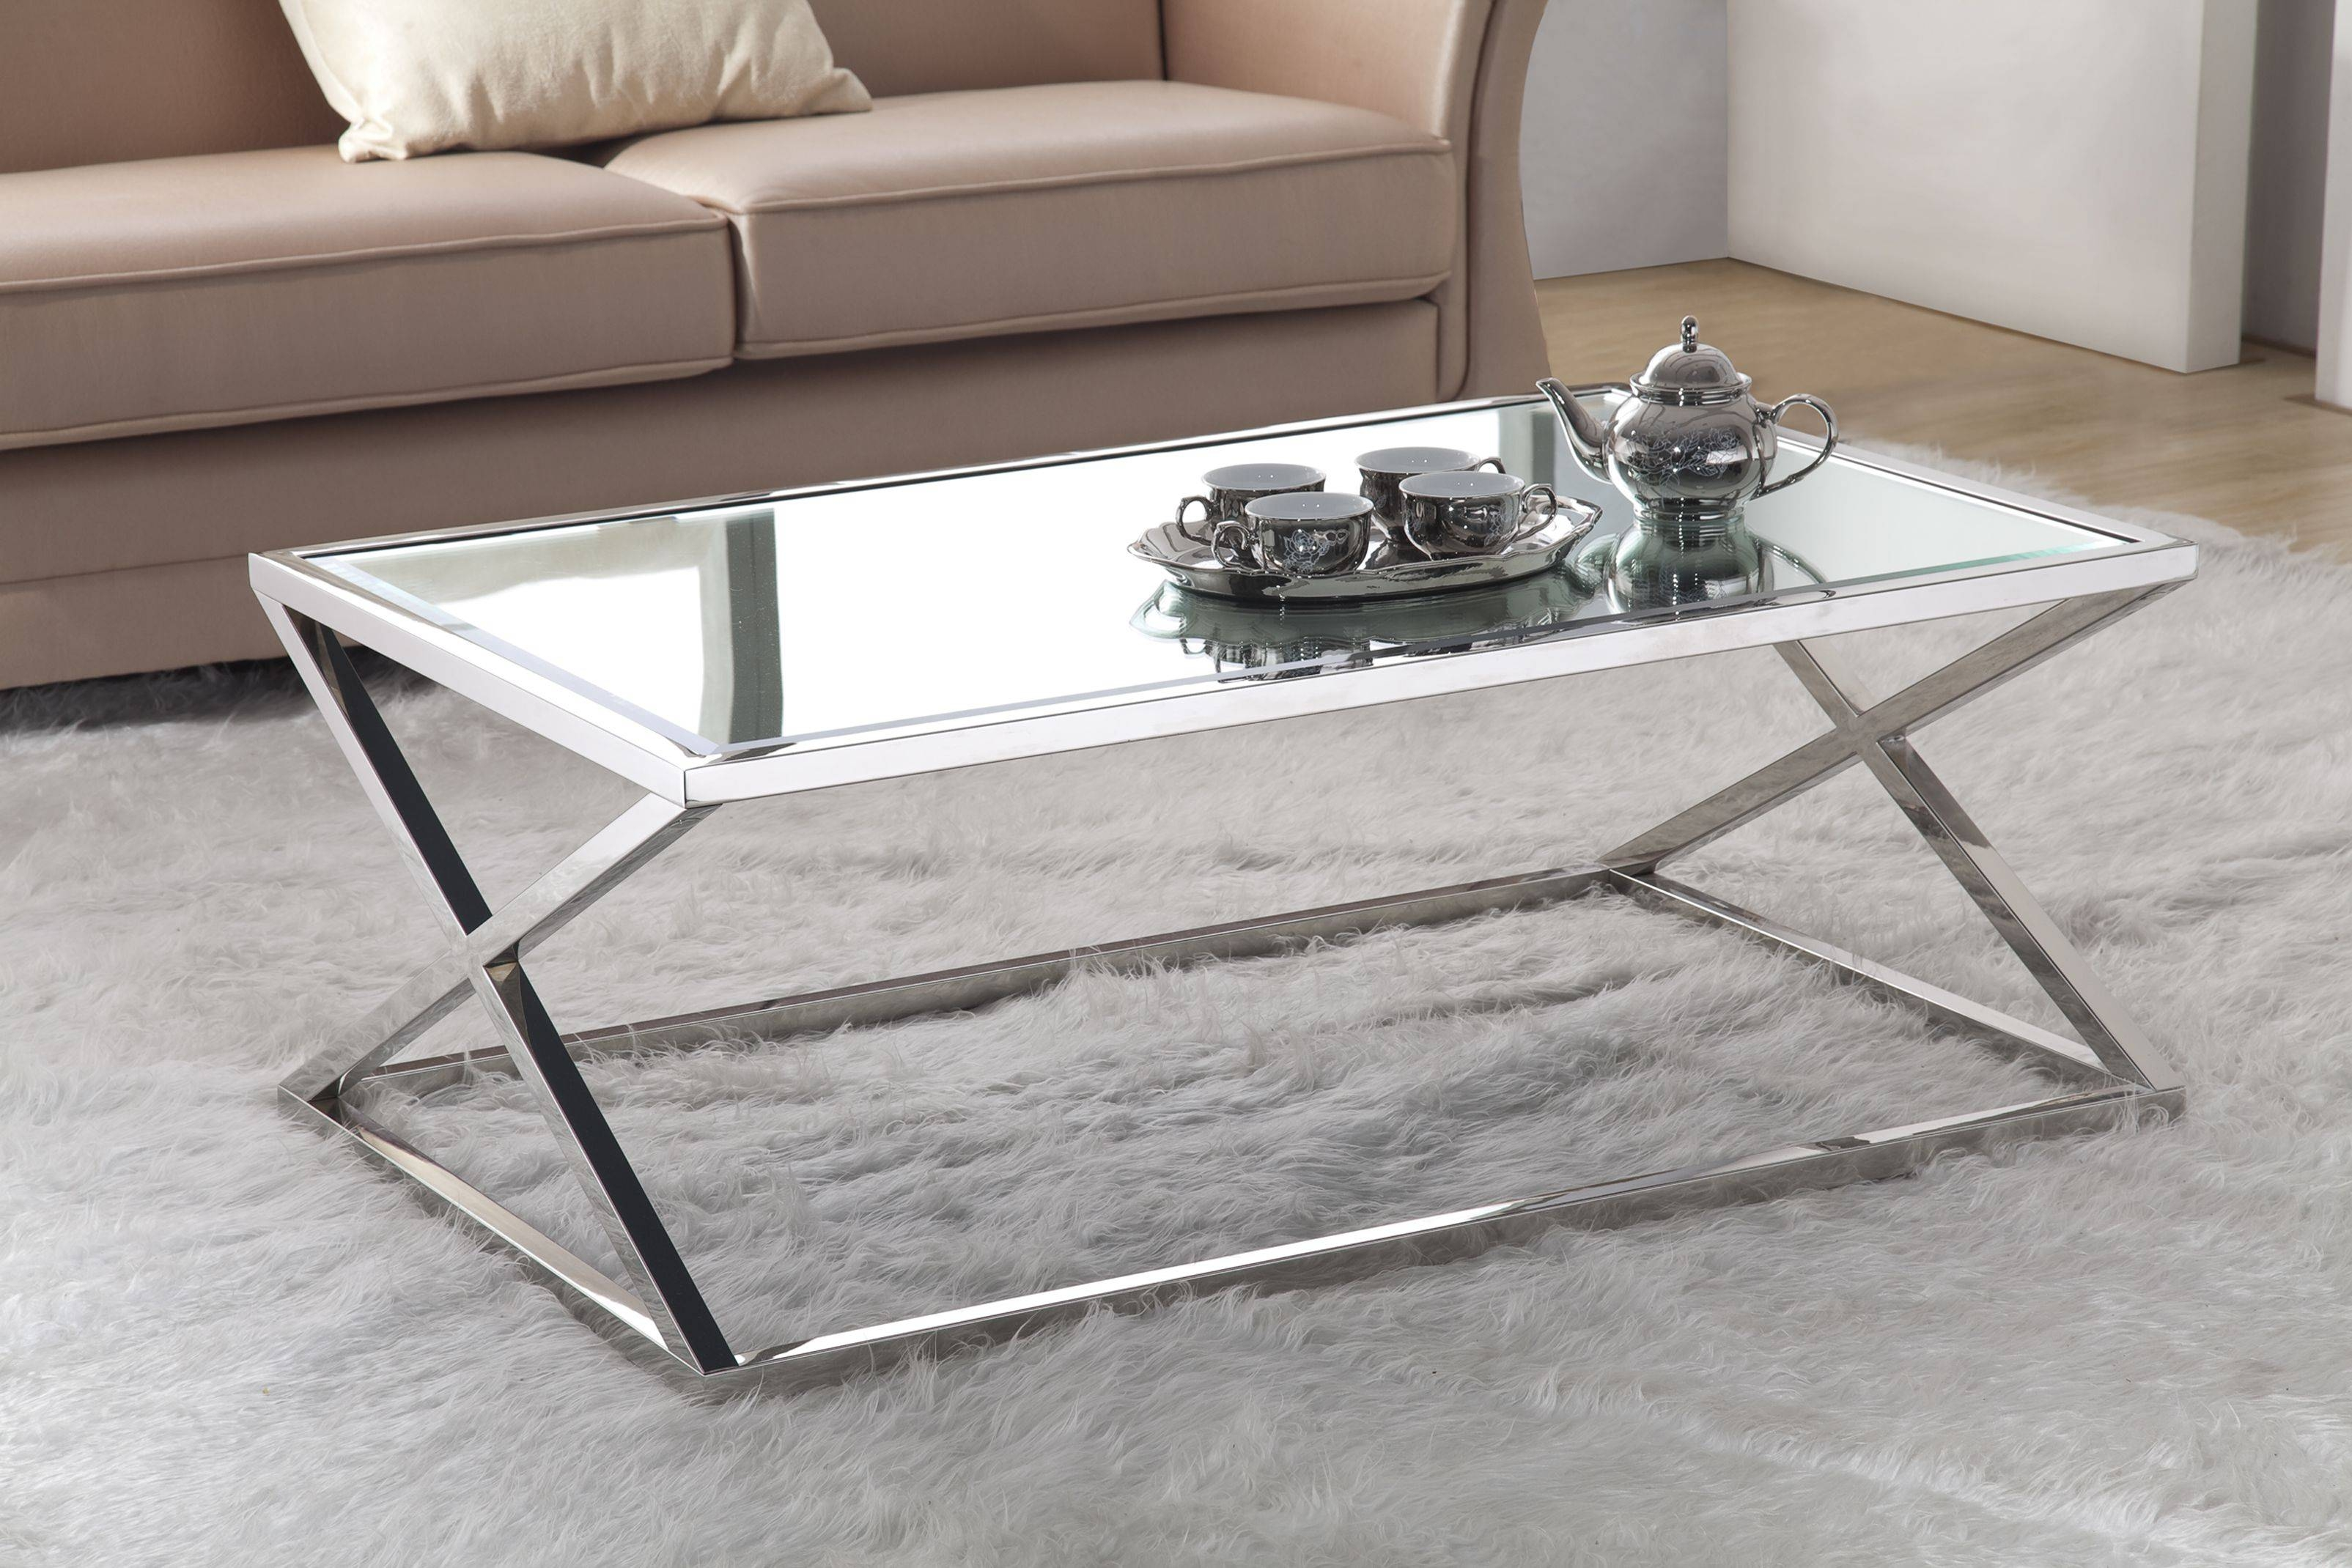 Contemporary Glass Coffee Tables Adding More Style Into The Room throughout Transparent Glass Coffee Tables (Image 14 of 30)